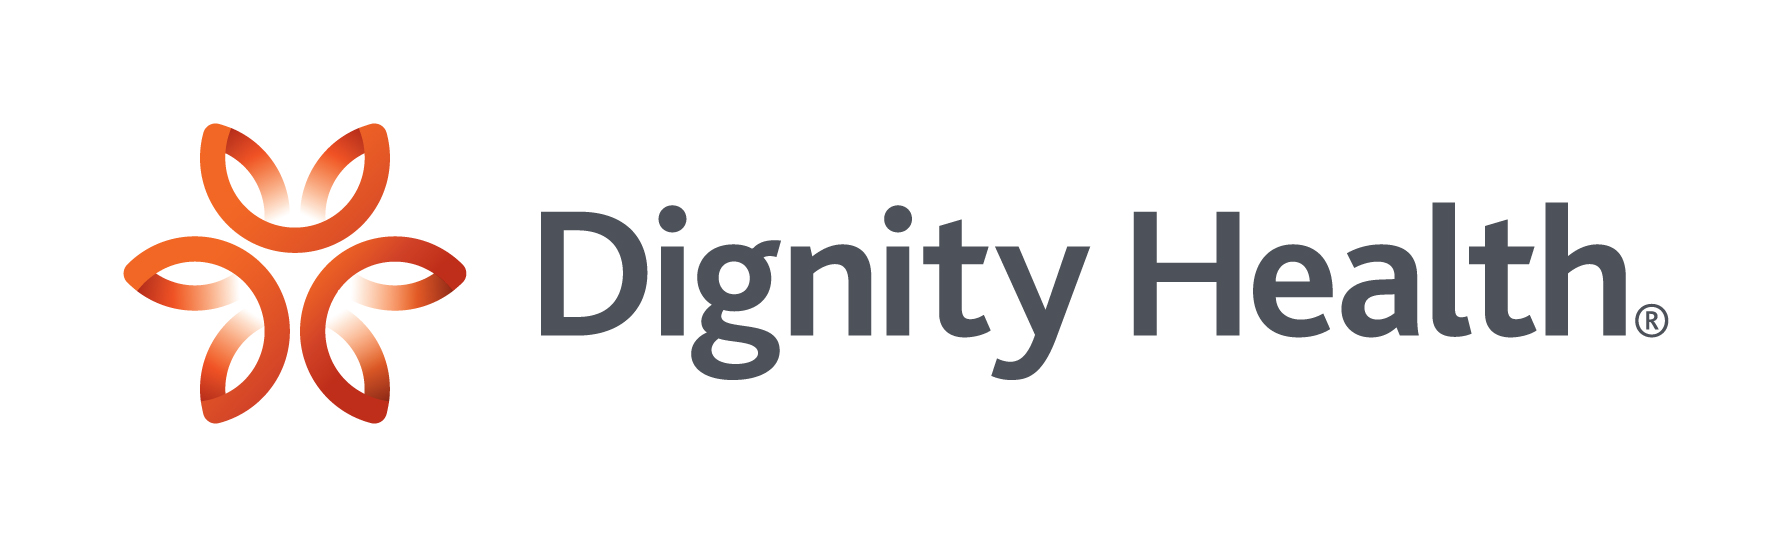 #2.Dignity Health (Presenting)